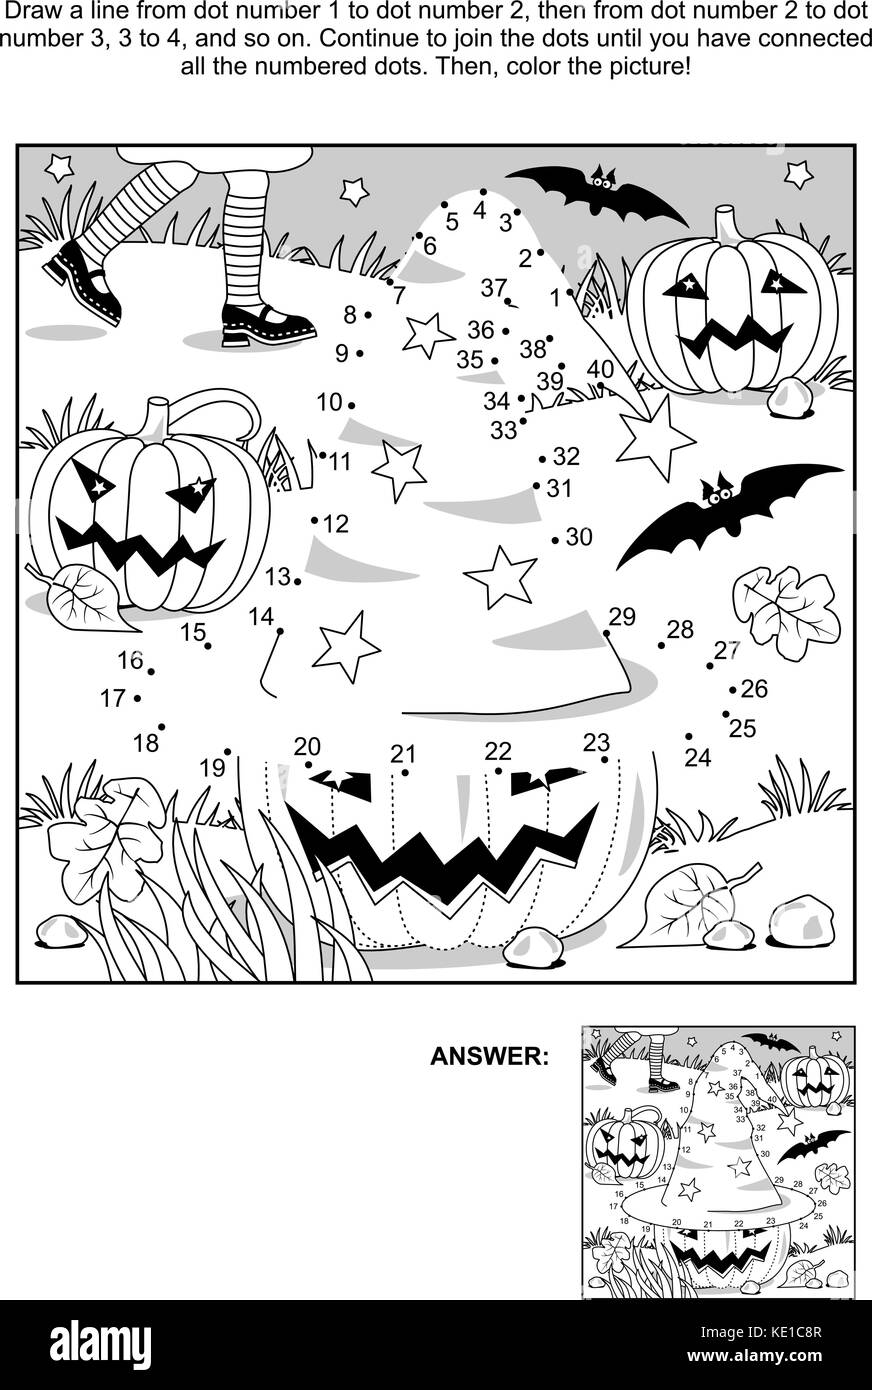 Connect the dots picture puzzle and coloring page - Halloween scene with witch hat, pumpkins, bats, and young witch - Stock Image